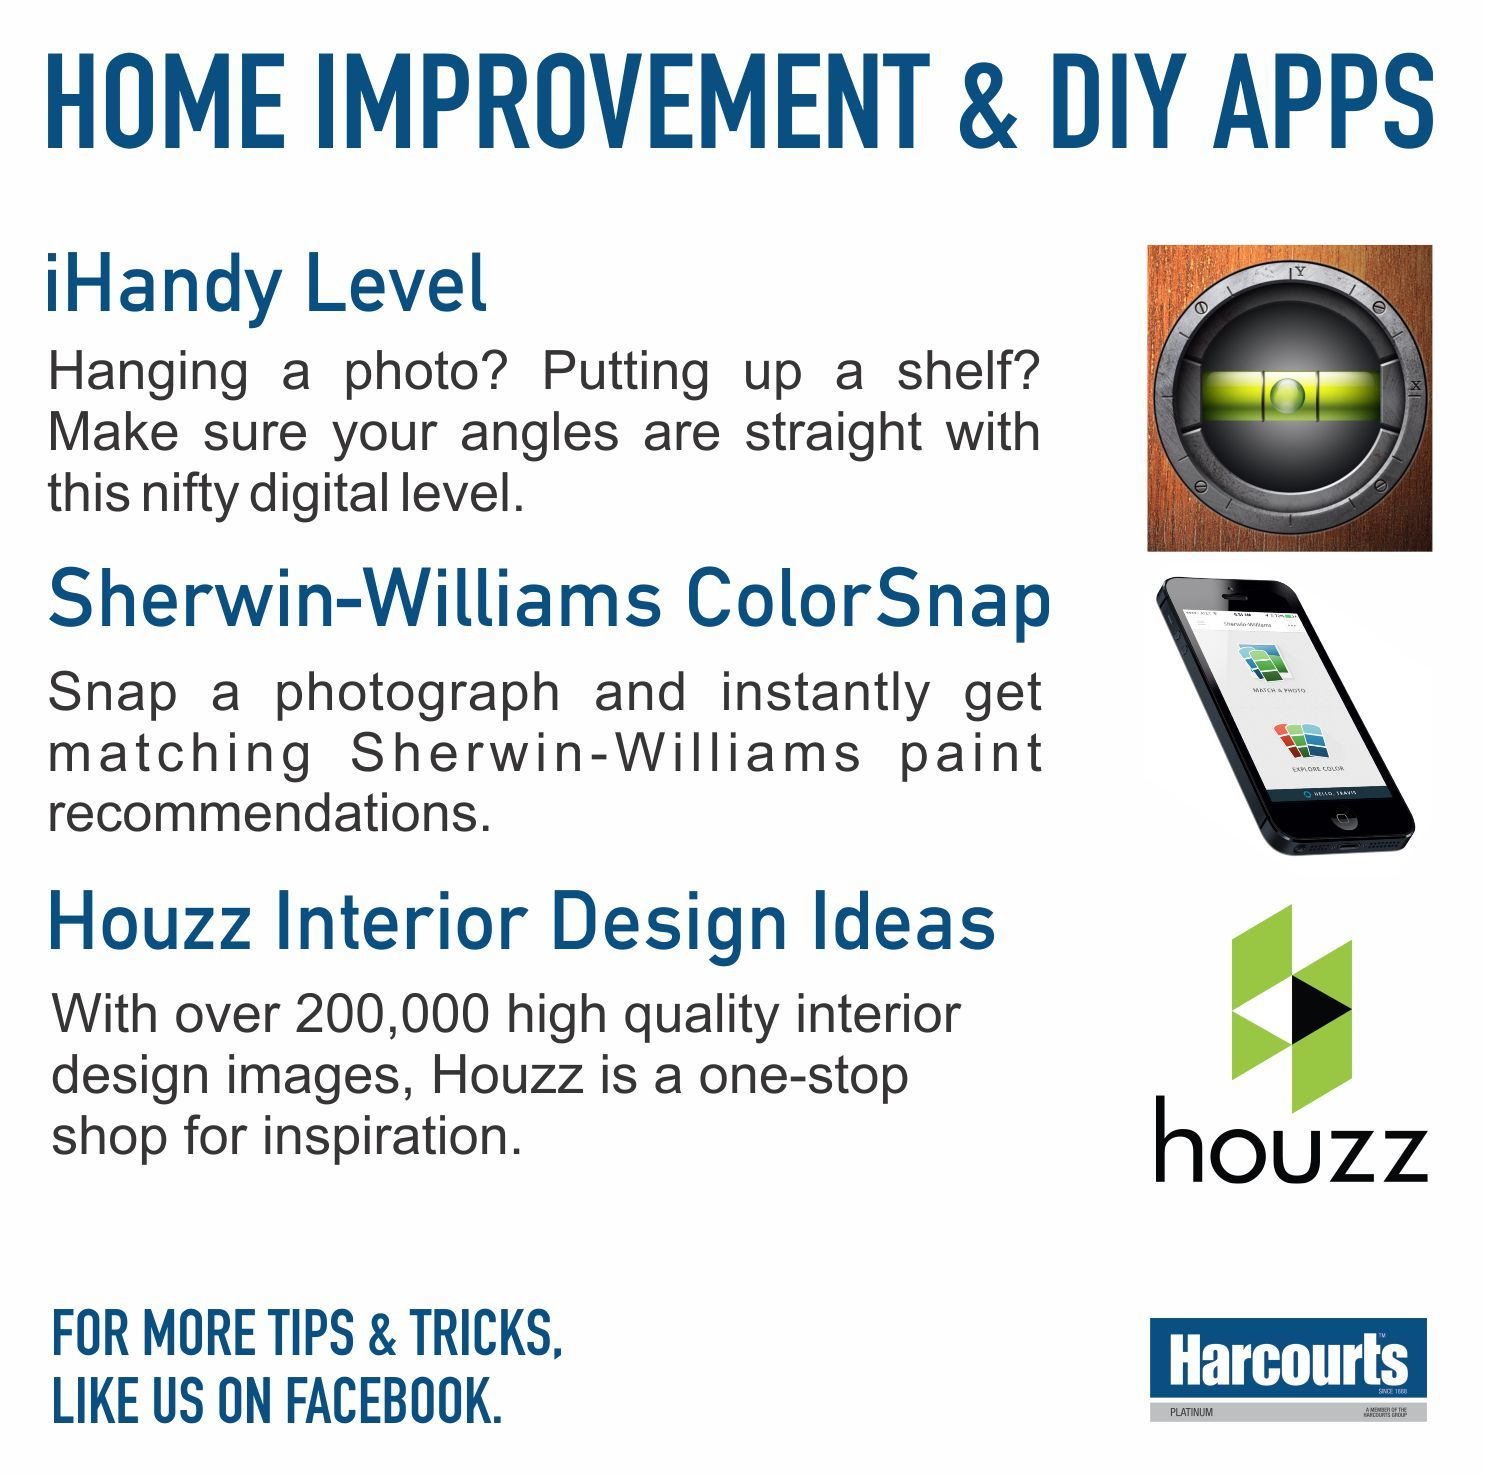 3 Techy Home Improvement & DIY Apps #TopTipTuesday